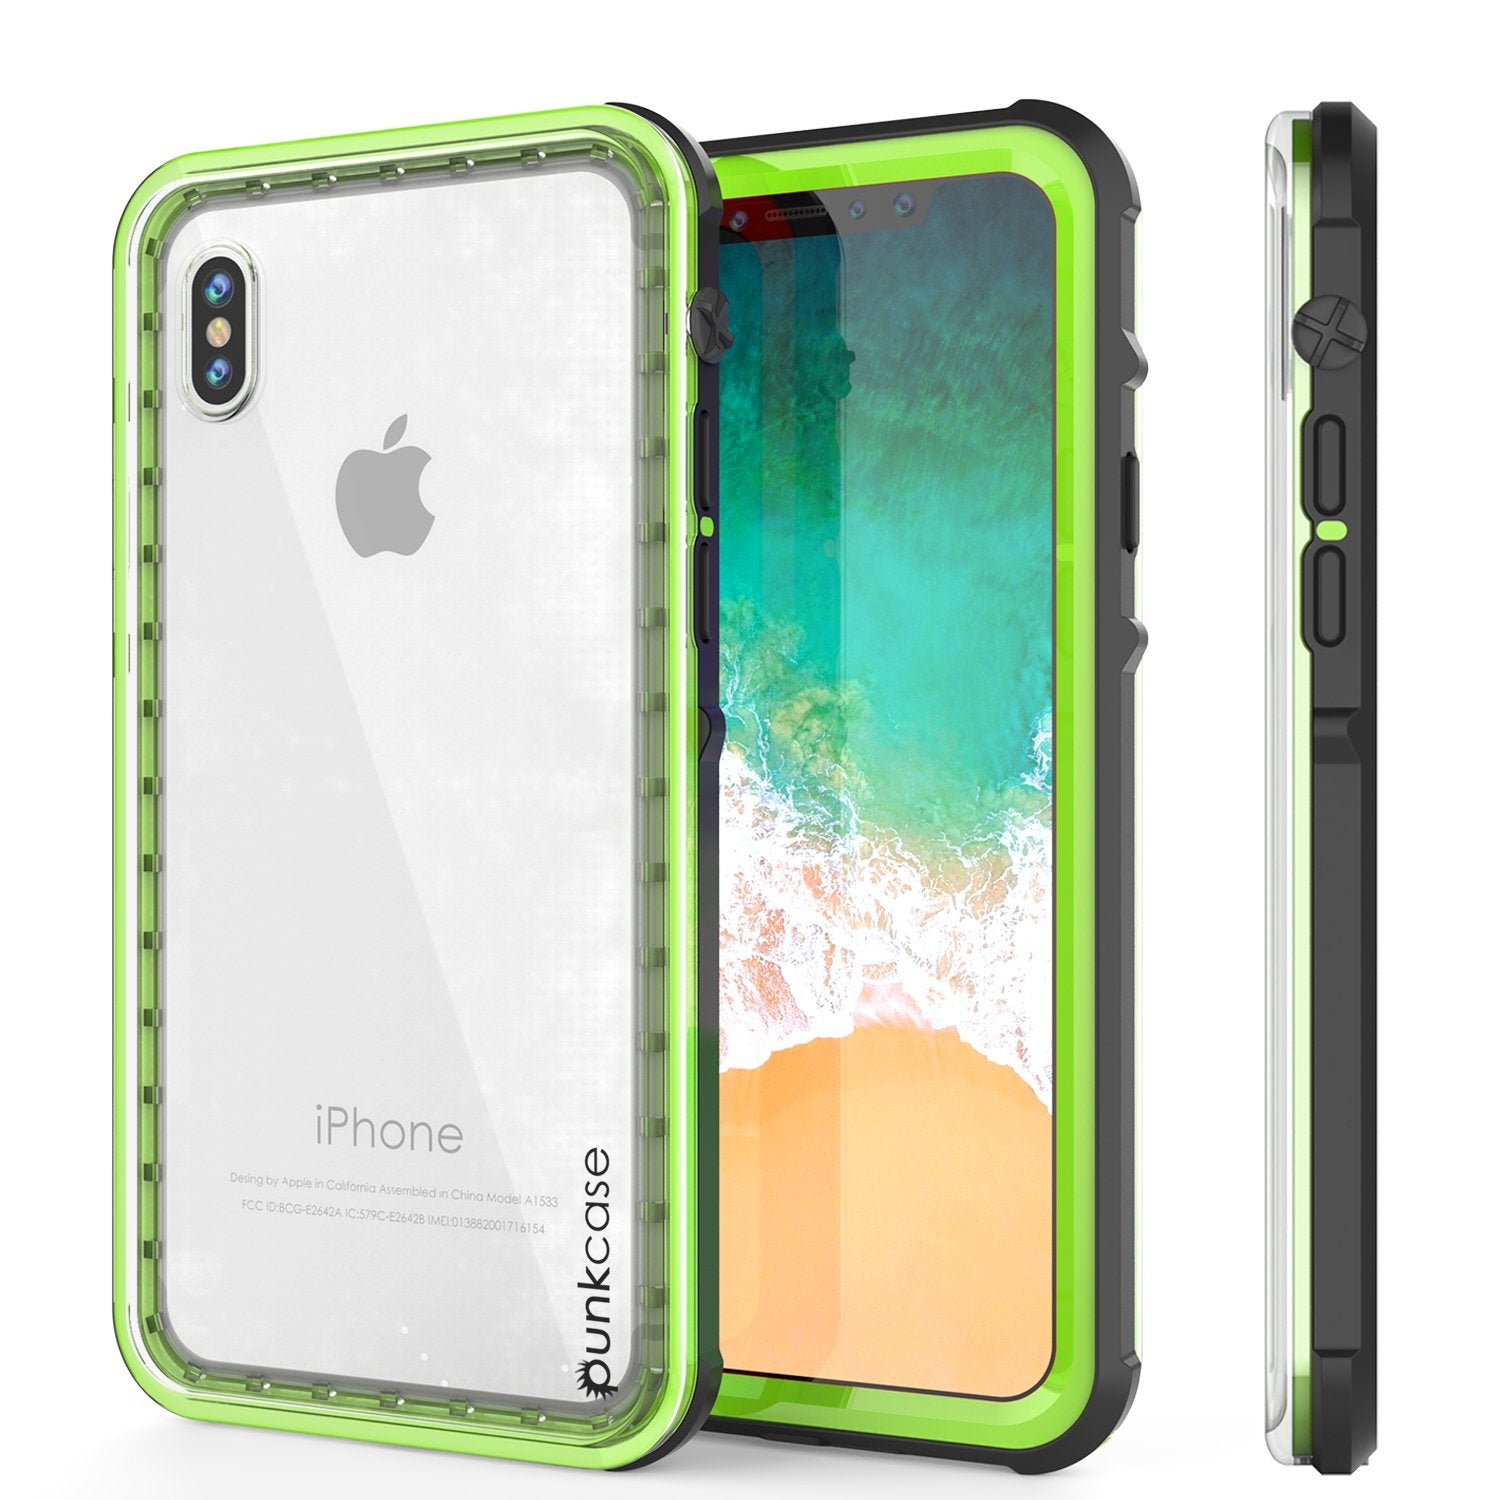 iPhone XS Case, PUNKCase [CRYSTAL SERIES] Protective IP68 Certified Cover [Light Green]